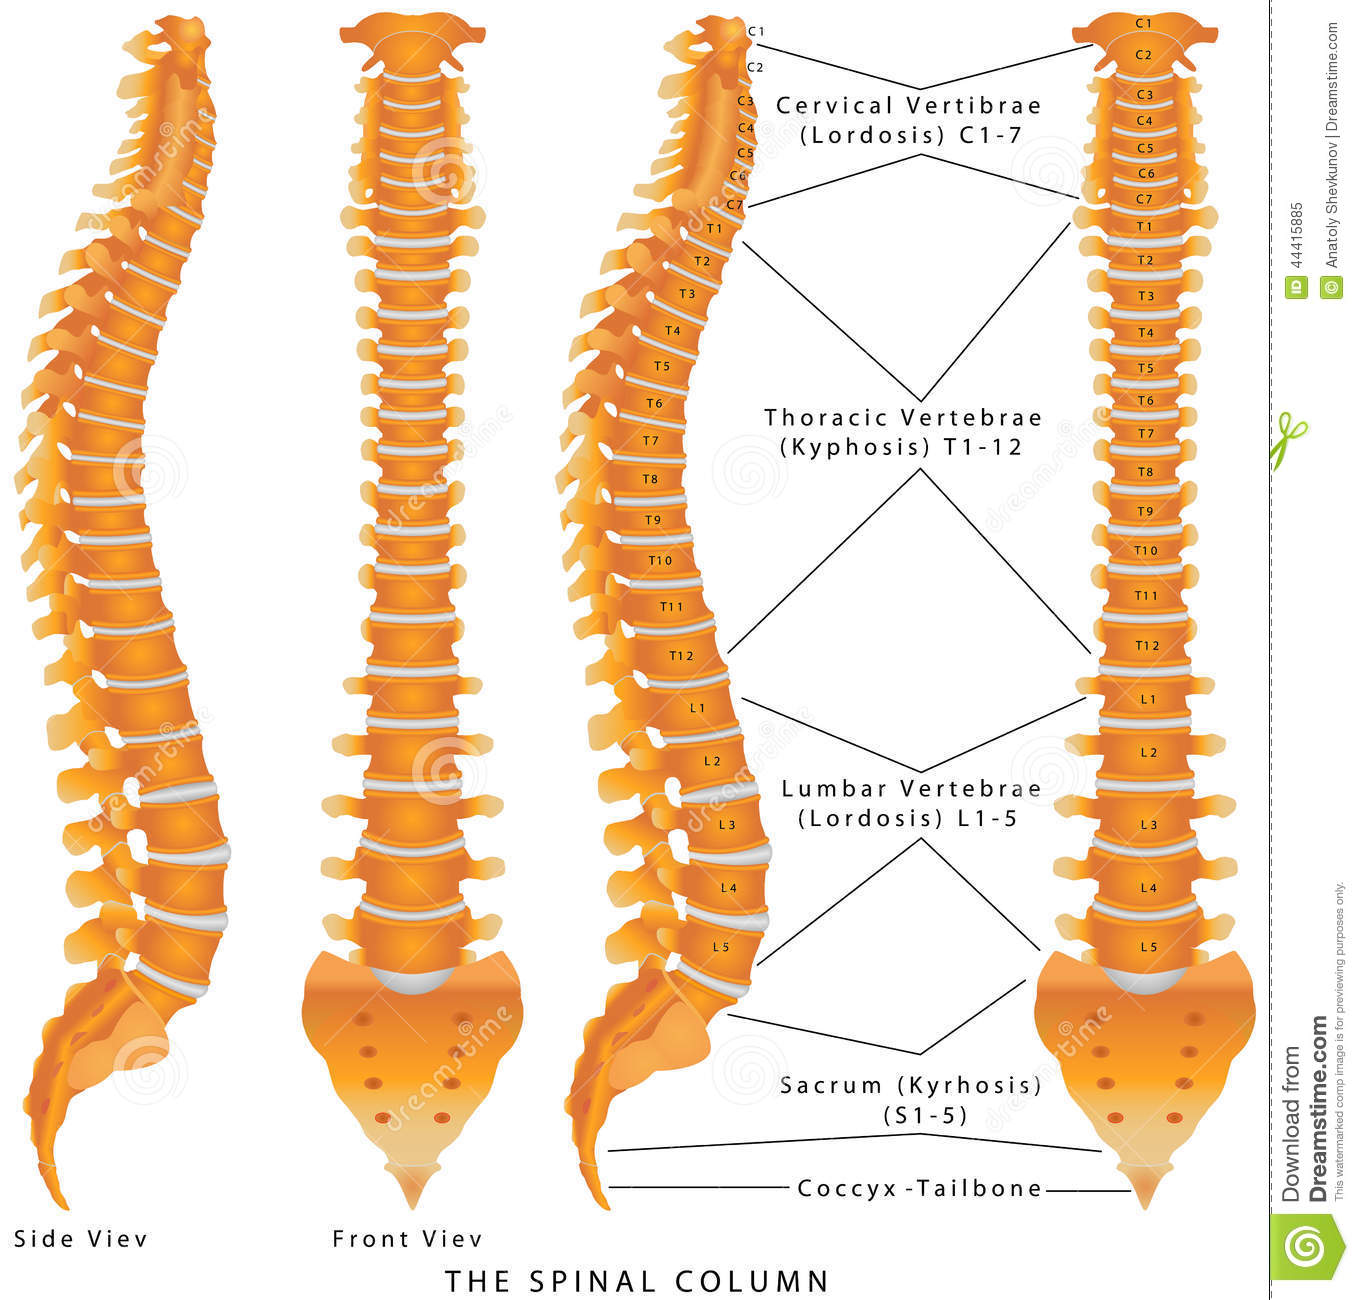 The Spinal Column